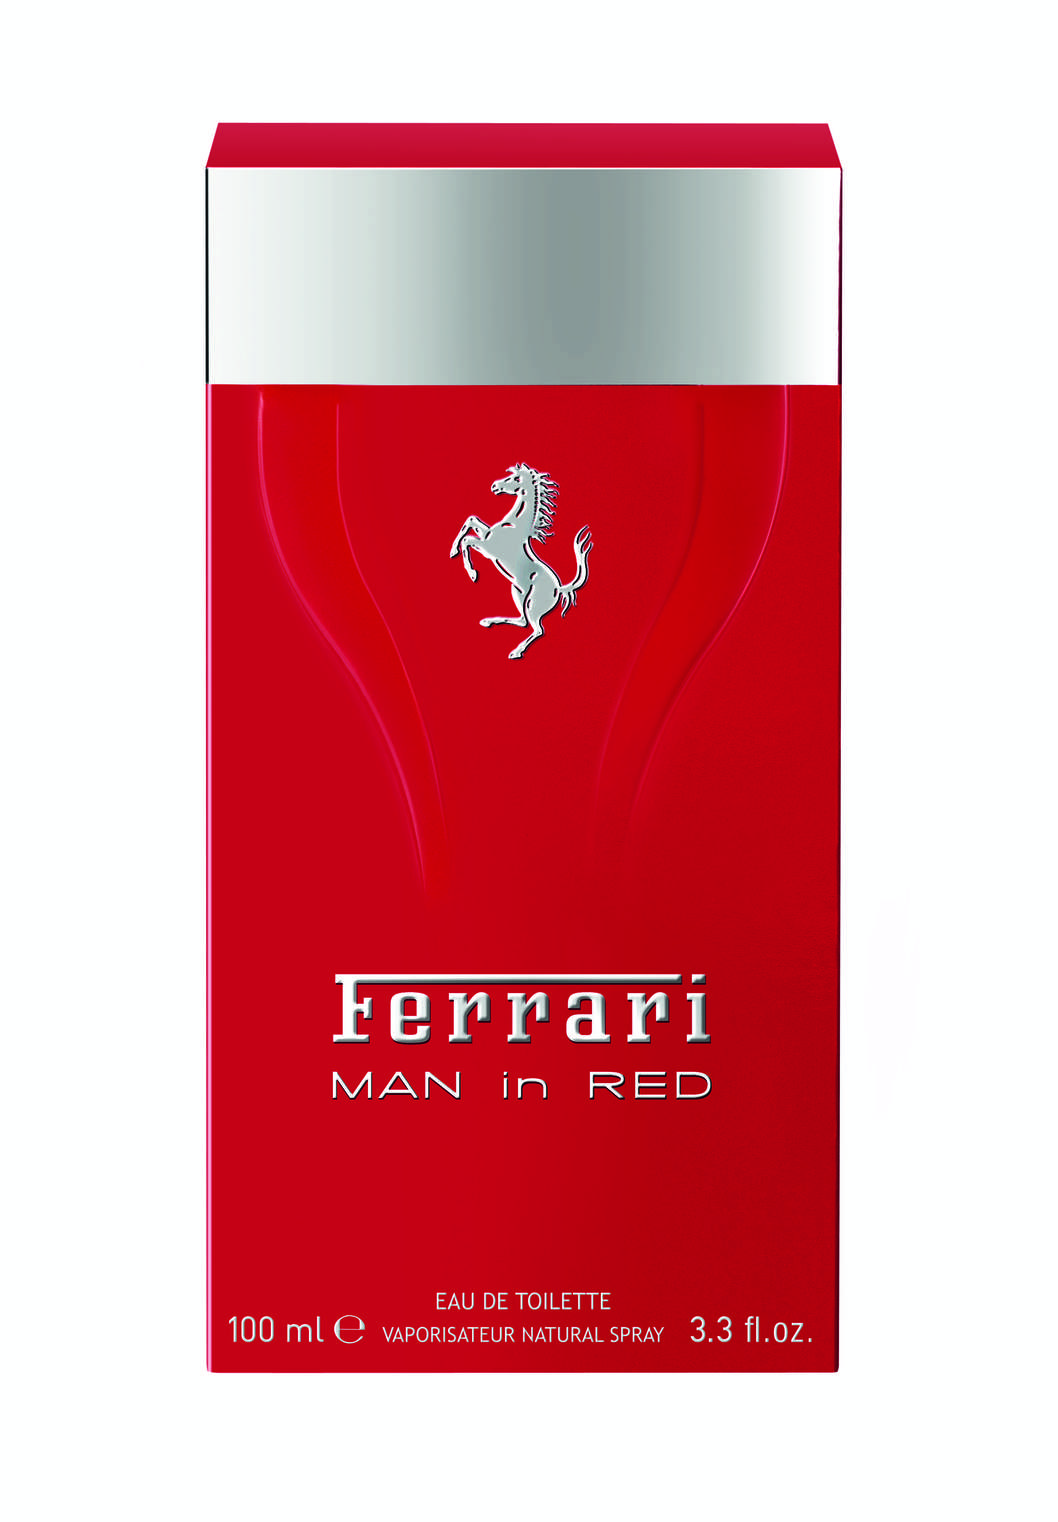 FOR HIM: Ferrari Man in Red